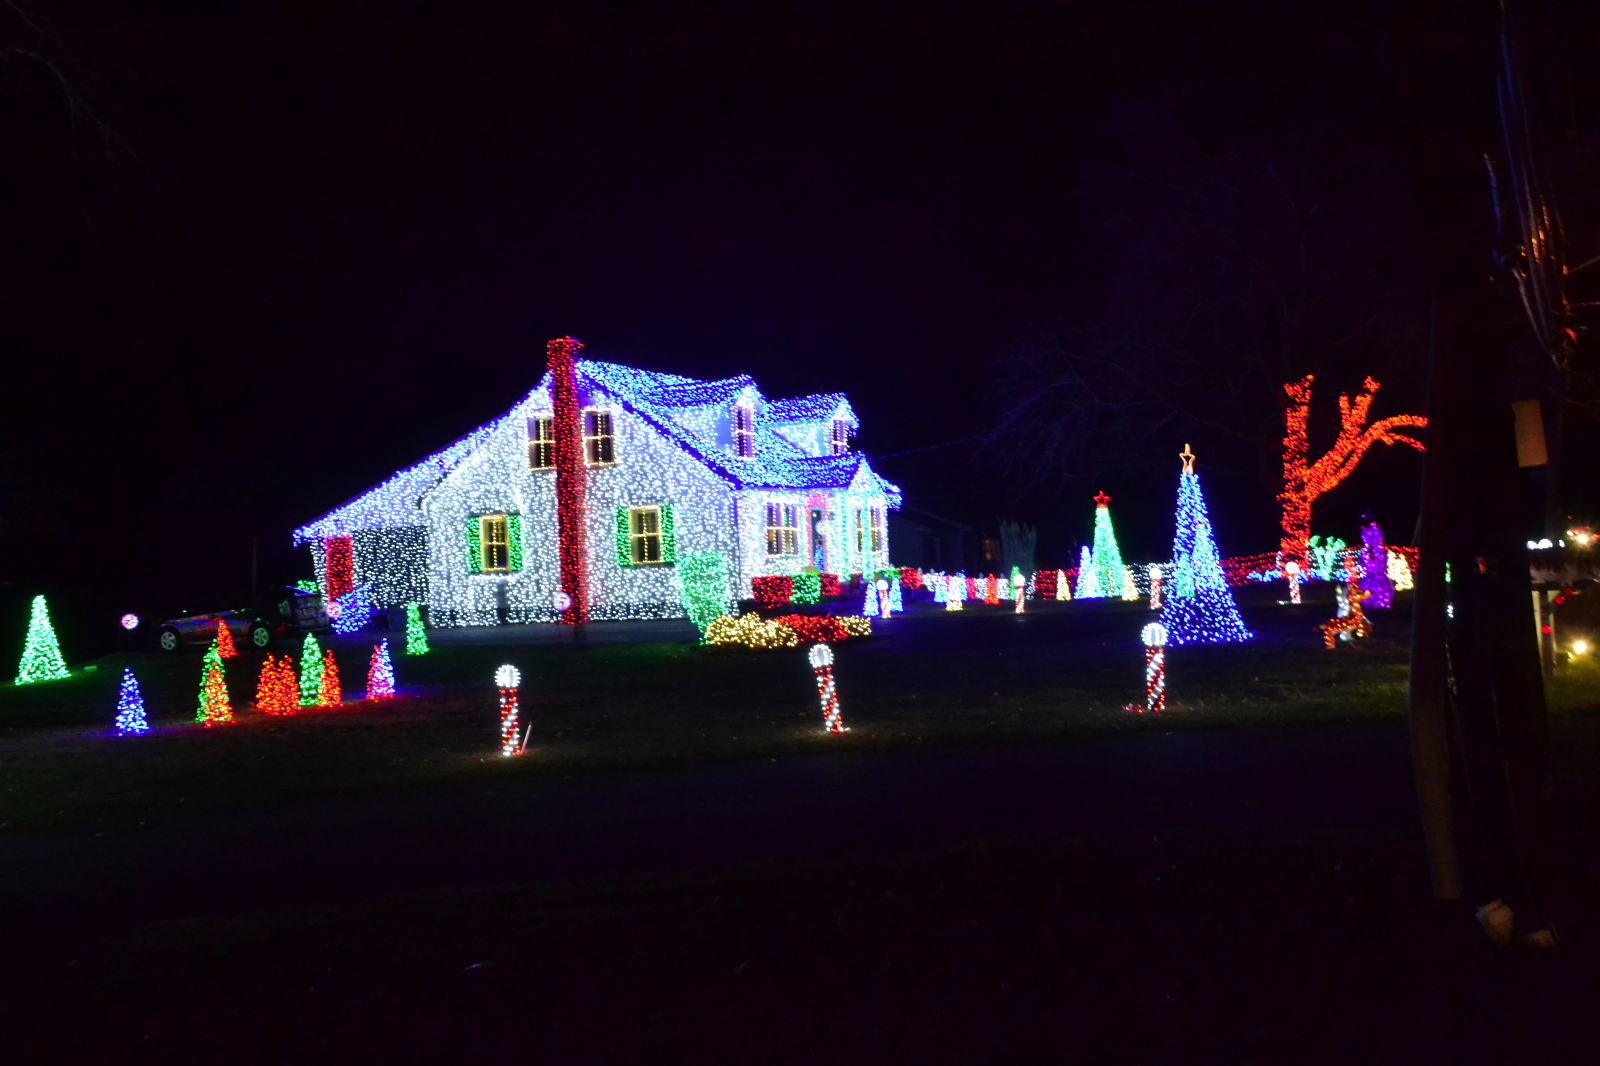 roxanne ardary of long foster real estate opens 2017 marltons best christmas lights contest - Best Christmas Light Show